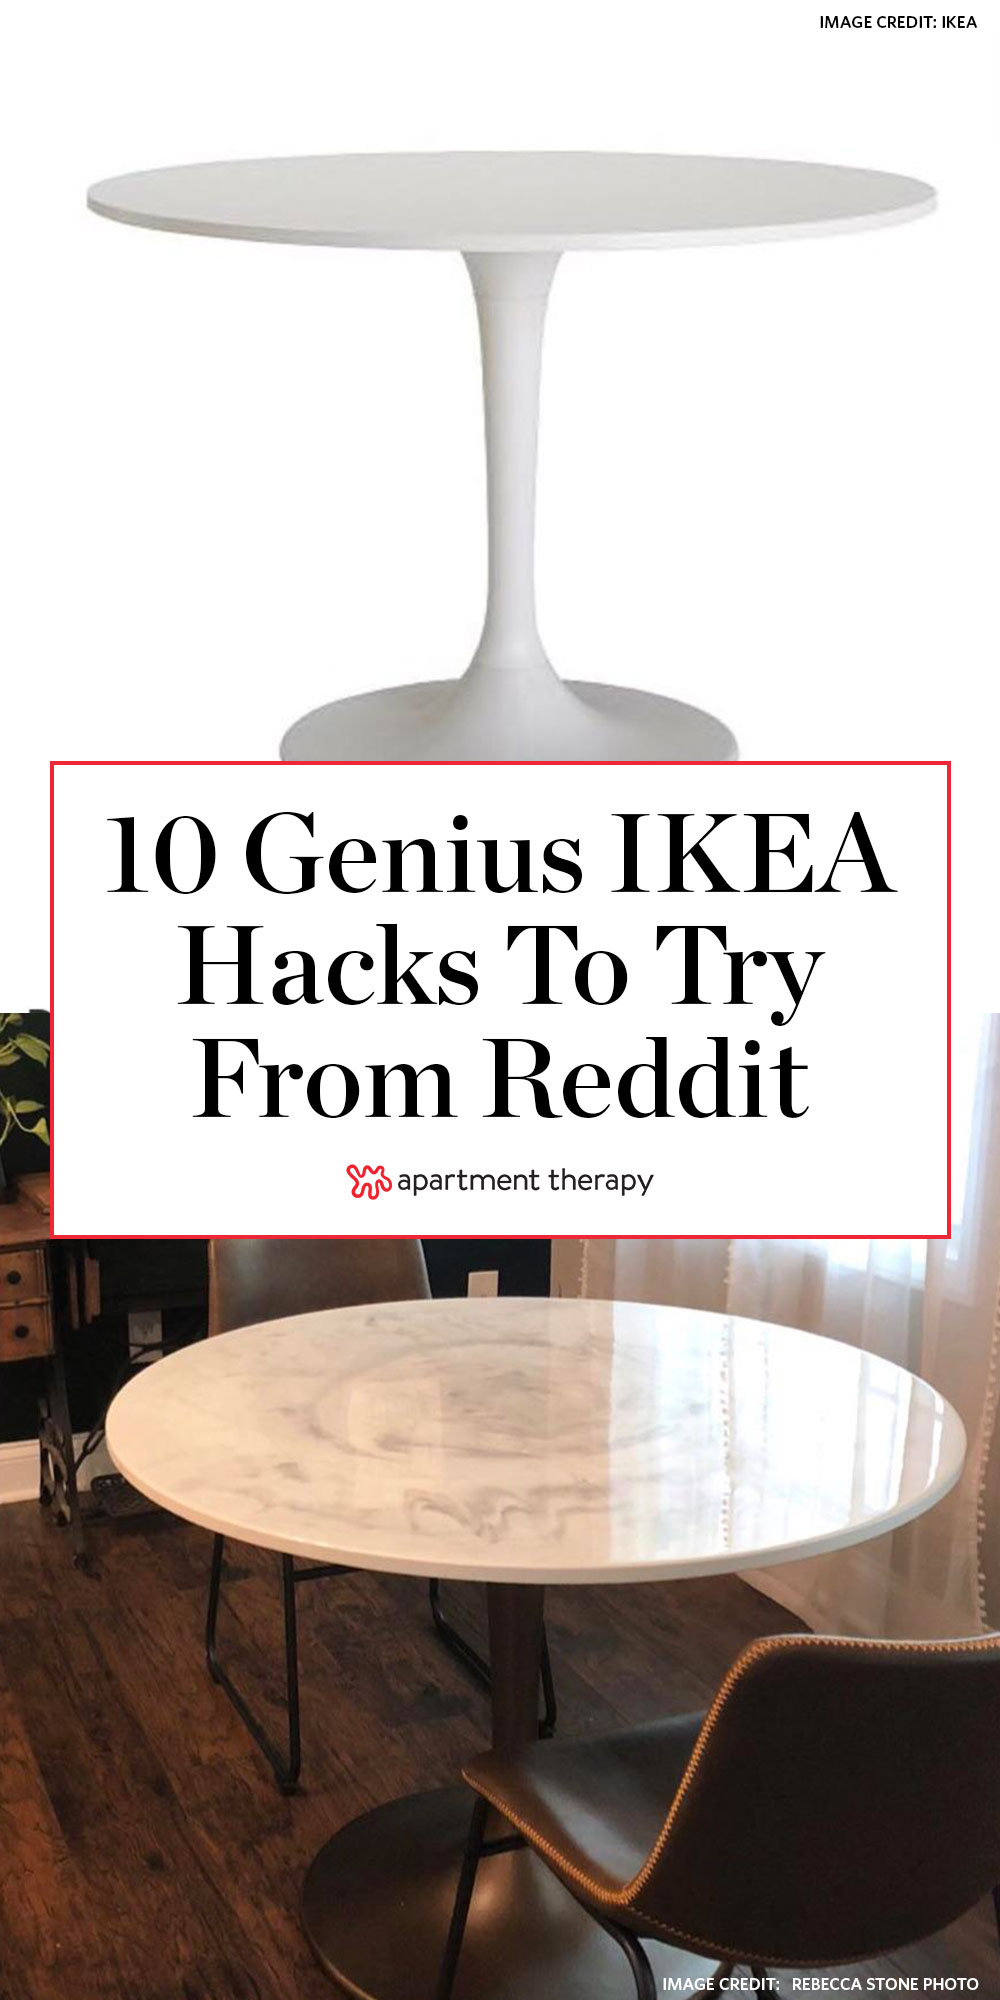 Best Ikea Hacks From Reddit Apartment Therapy